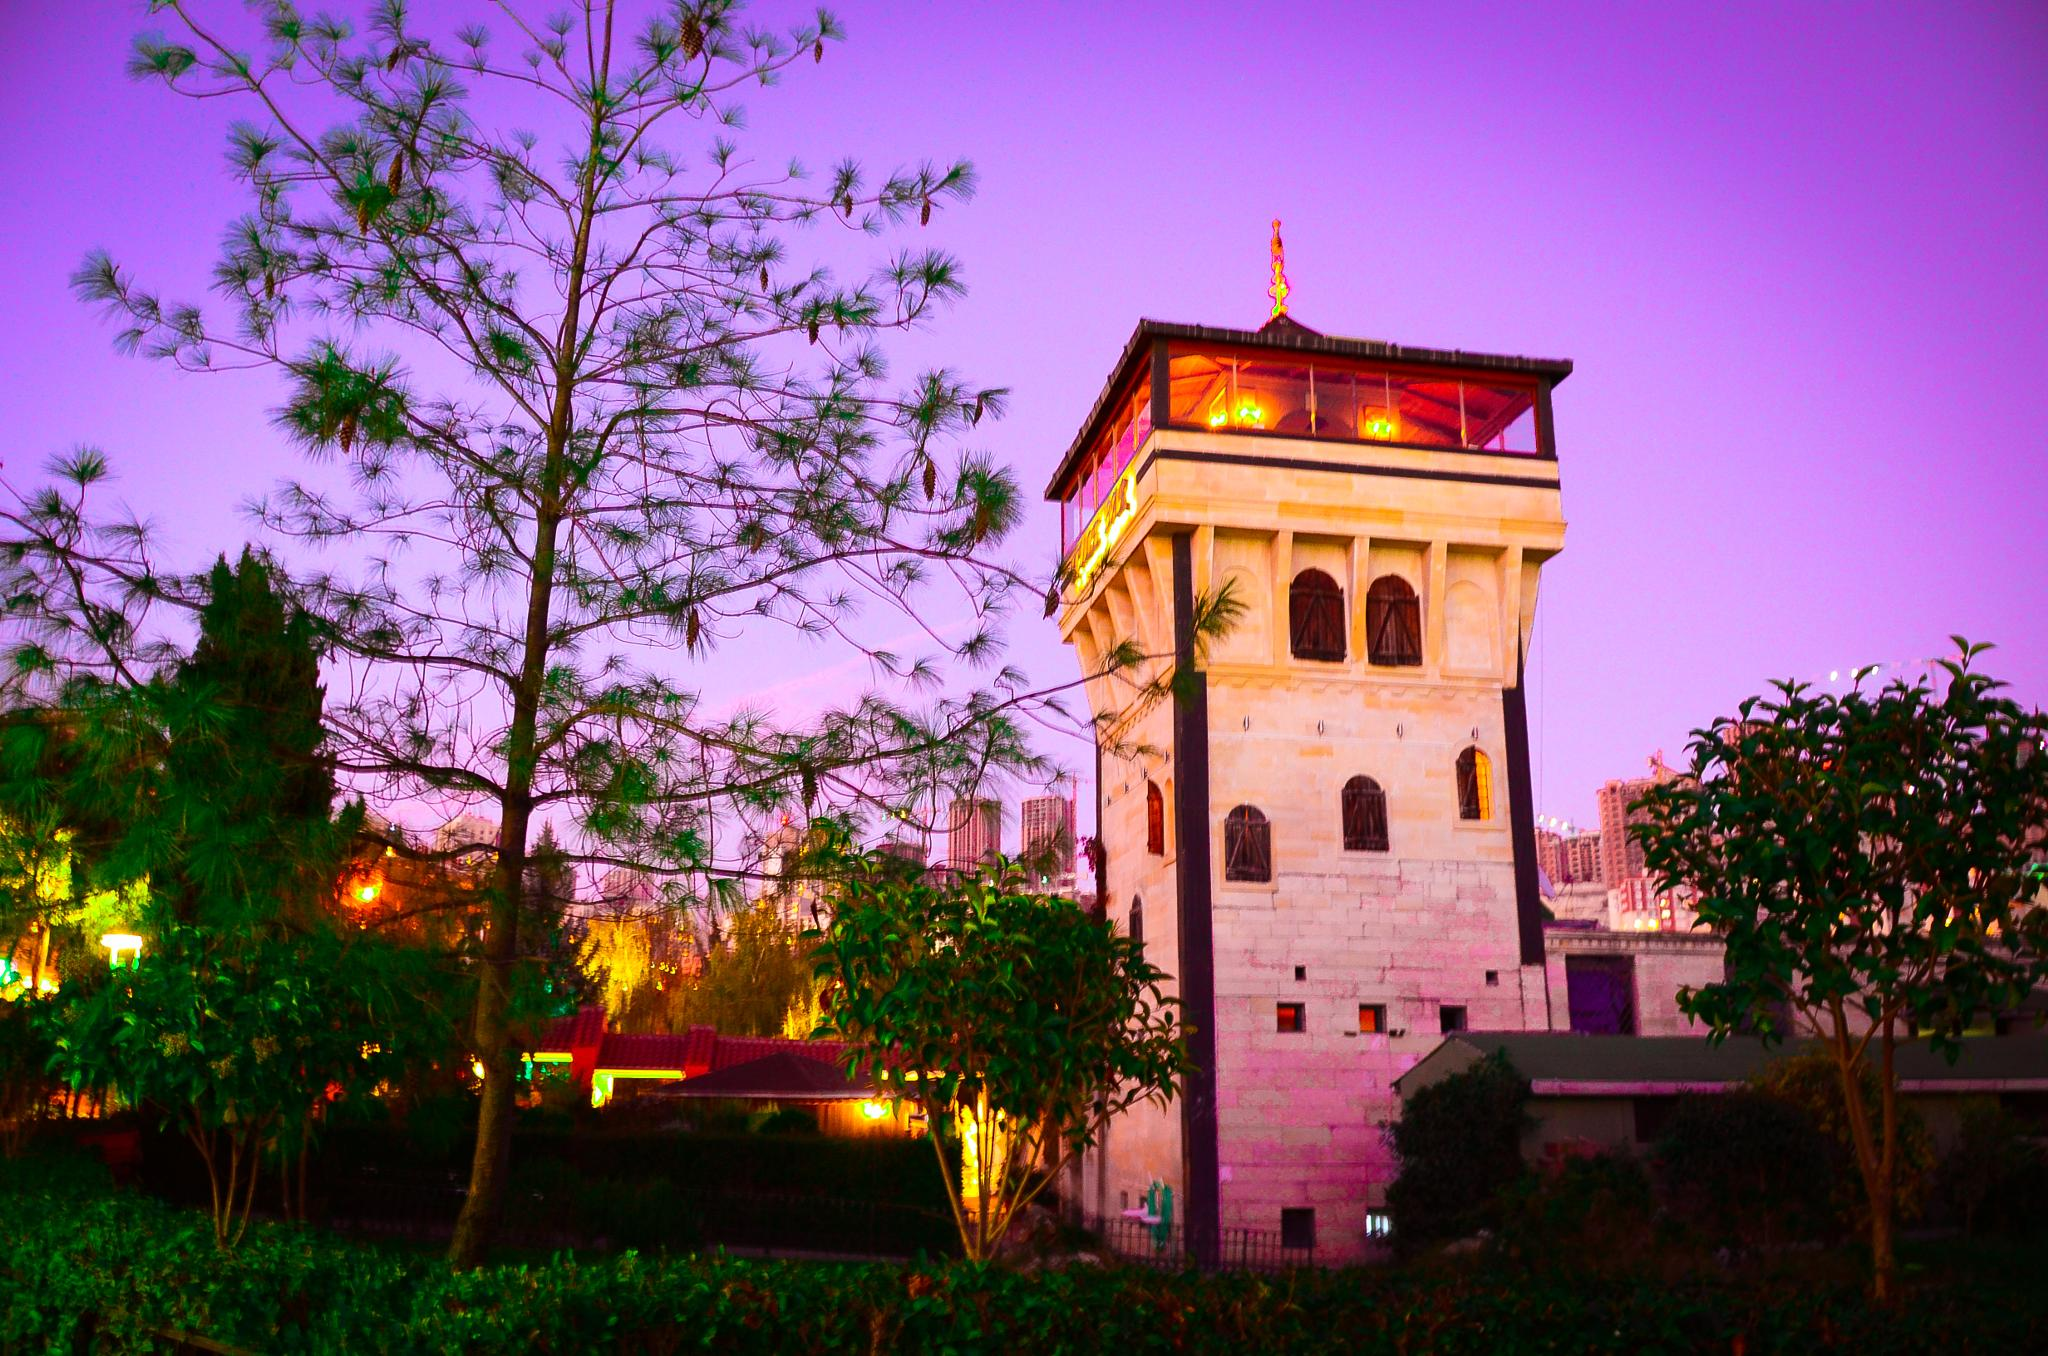 Tower at sunset time. by Saly.Wanli